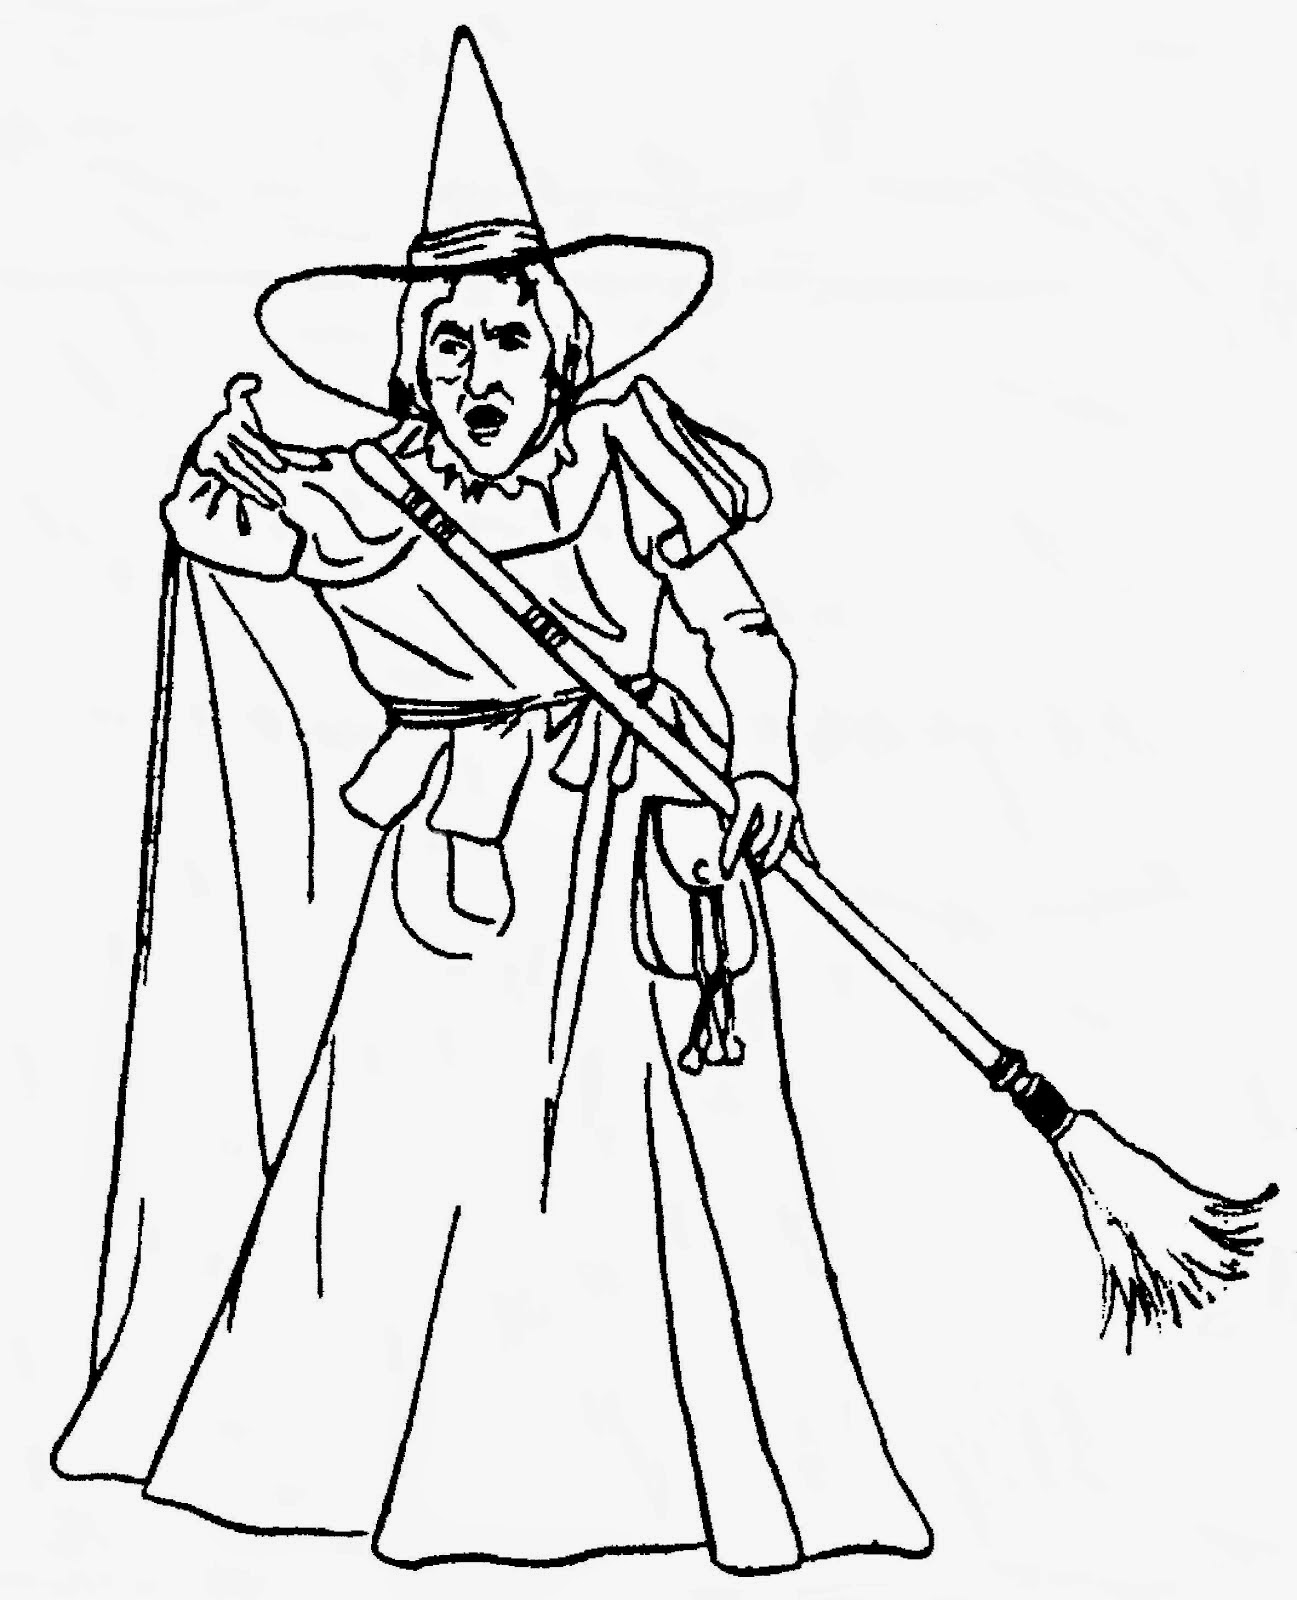 Halloween Coloring Pages: Coloring Pages: Halloween Free Printable Coloring Pages